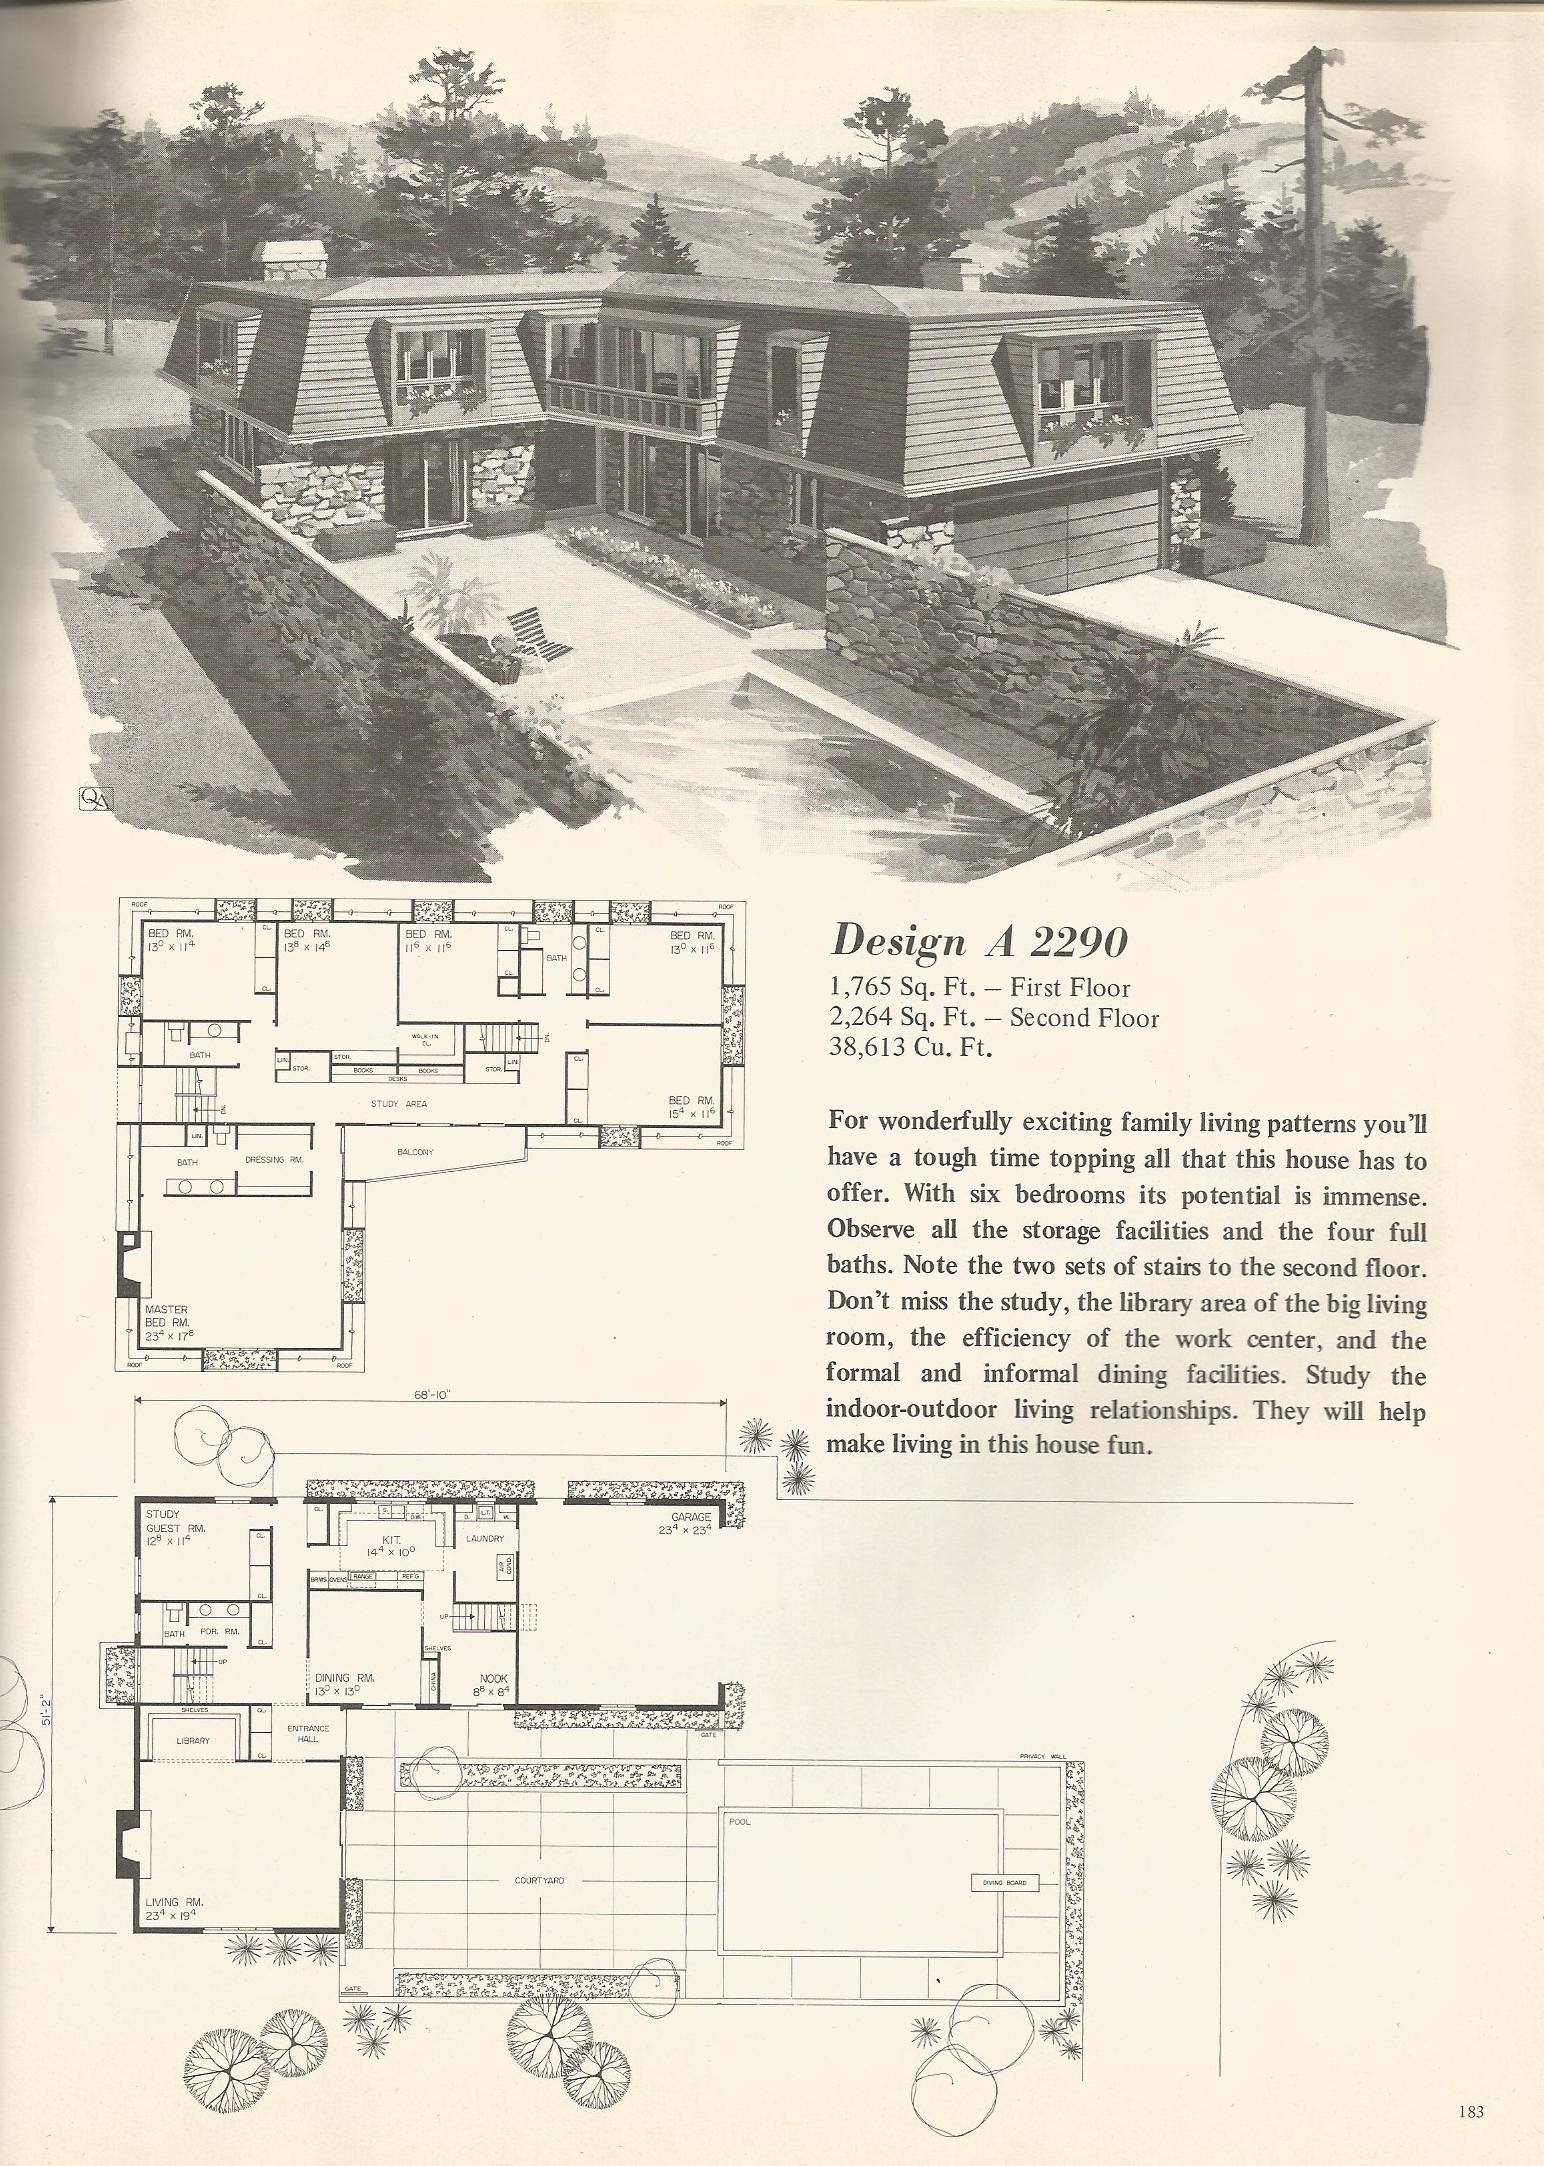 Vintage house plans 1970s contemporary designs posted for 1970s house plans